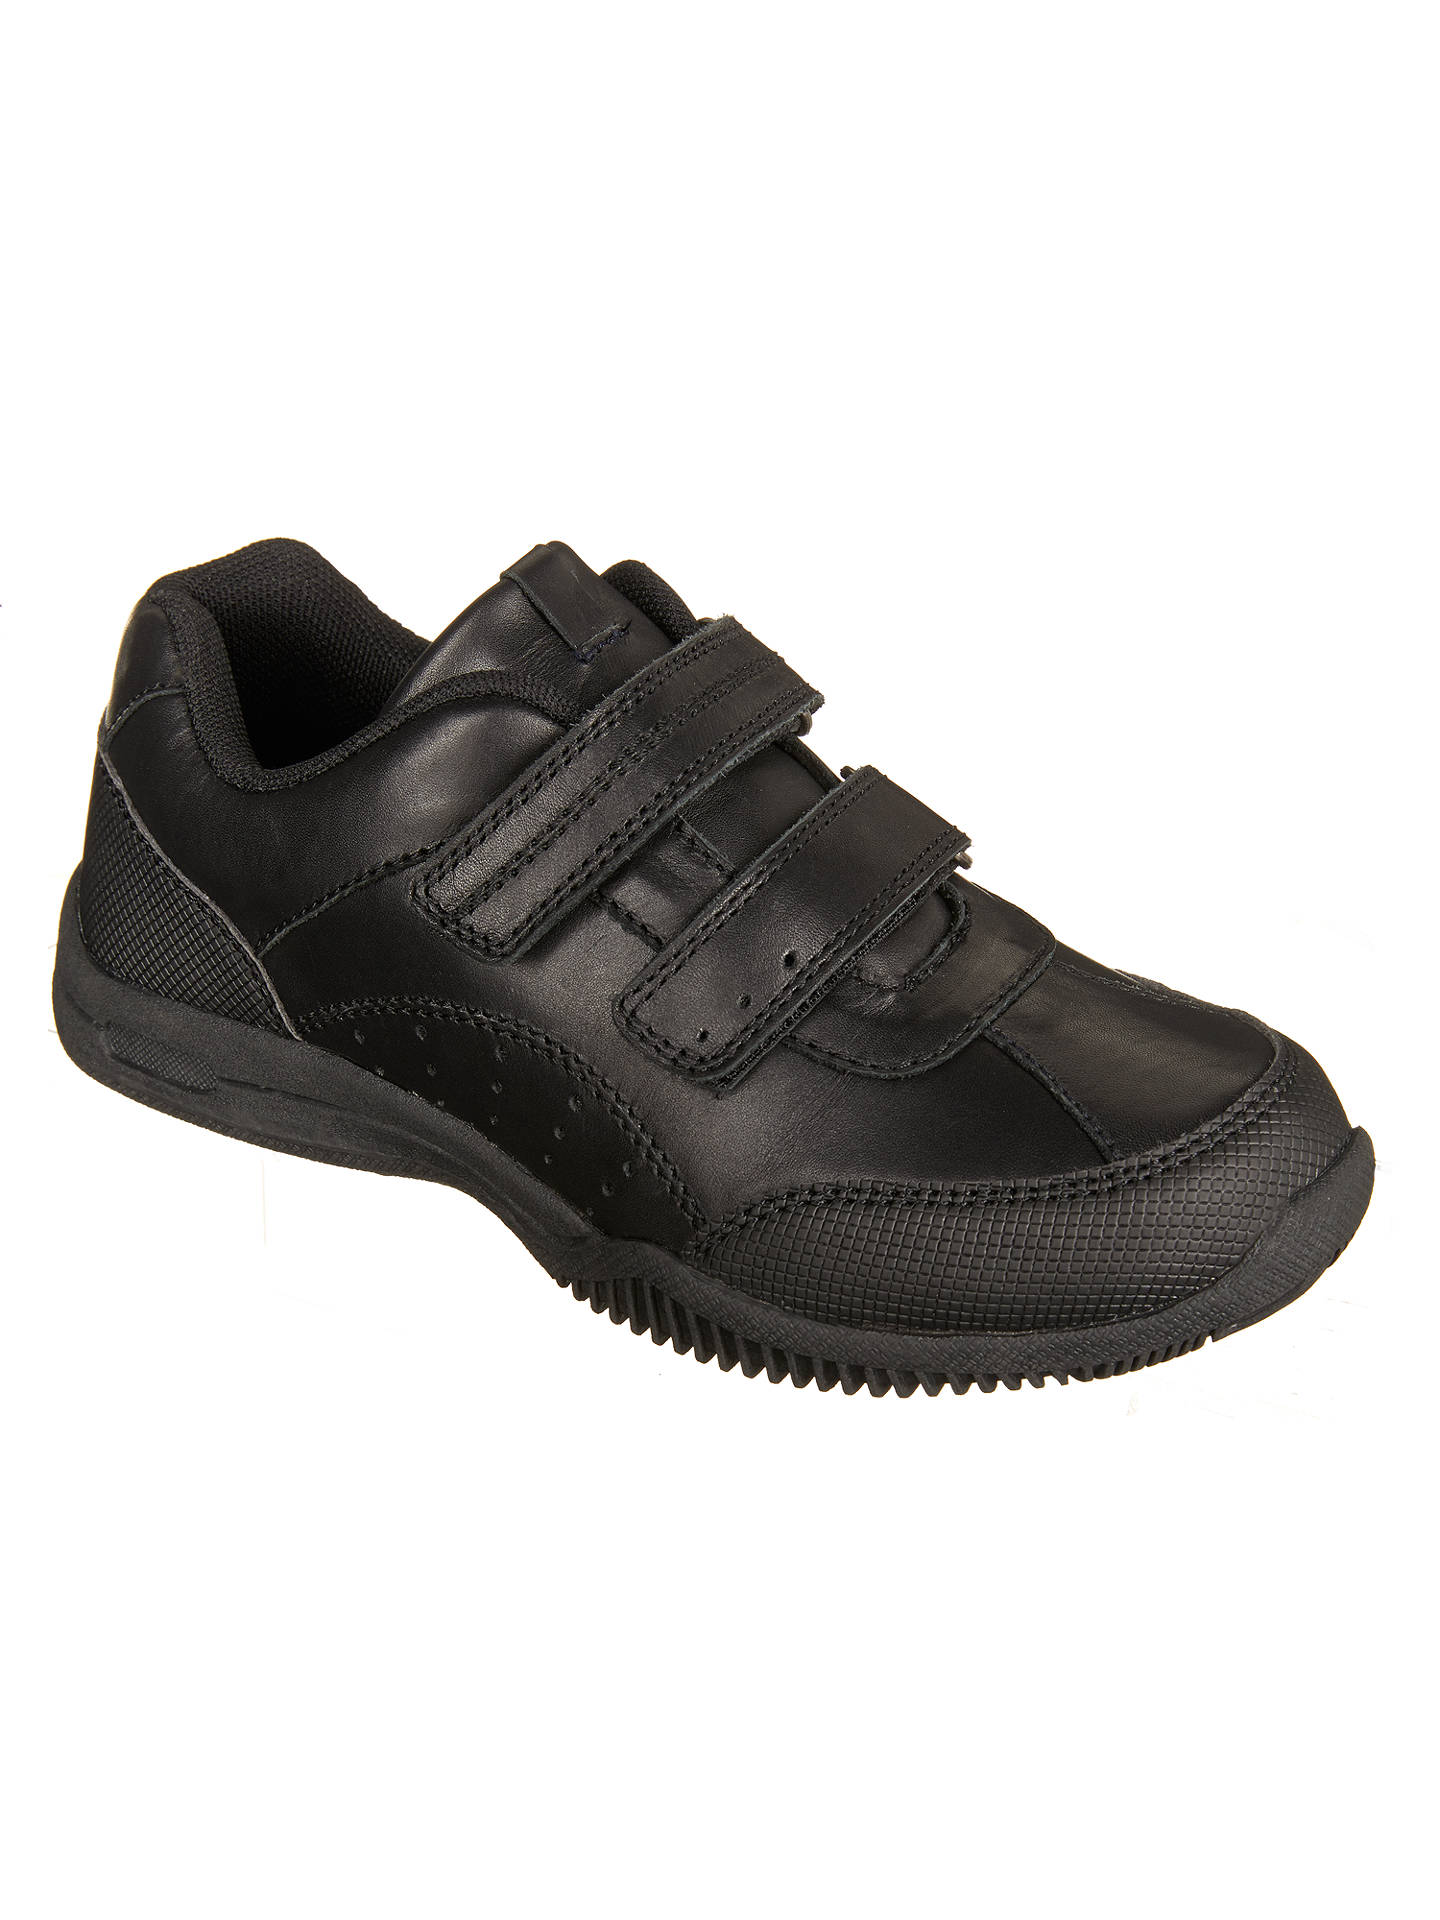 Buy John Lewis & Partners Children's Kent Double Riptape Shoes, Black, 4S Online at johnlewis.com